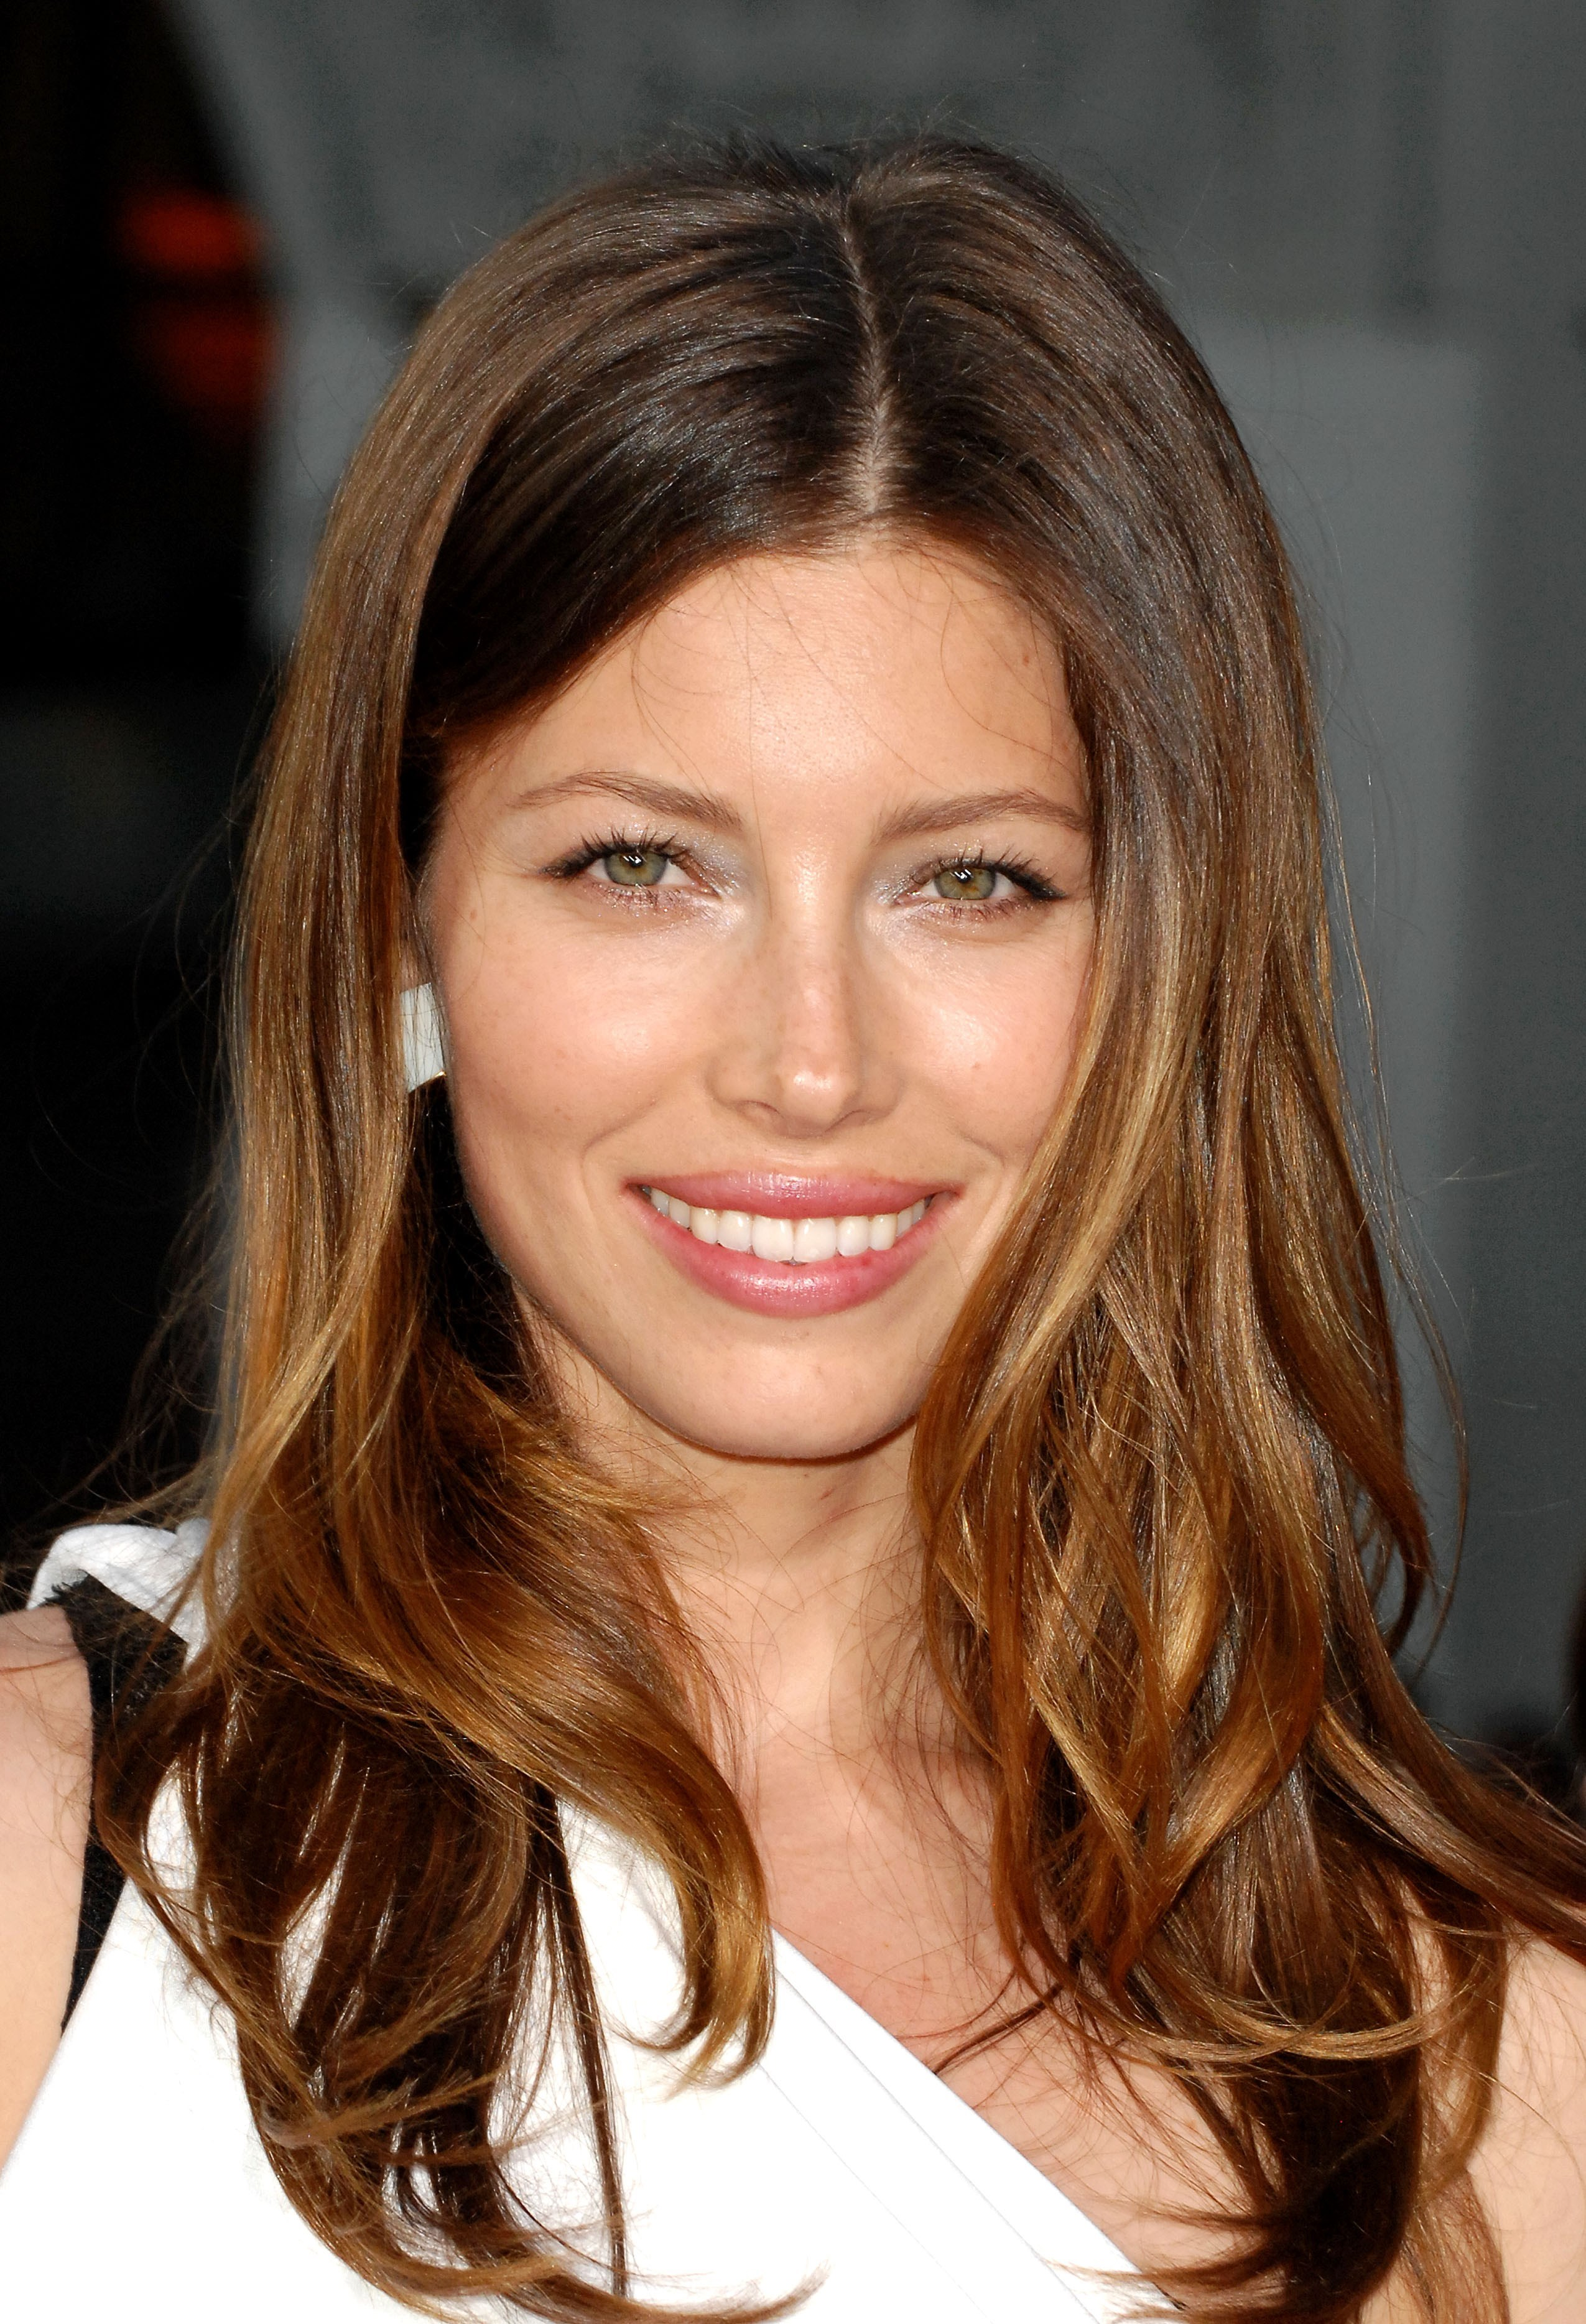 Jessica Biel | Known people - famous people news and ... Jessica Biel